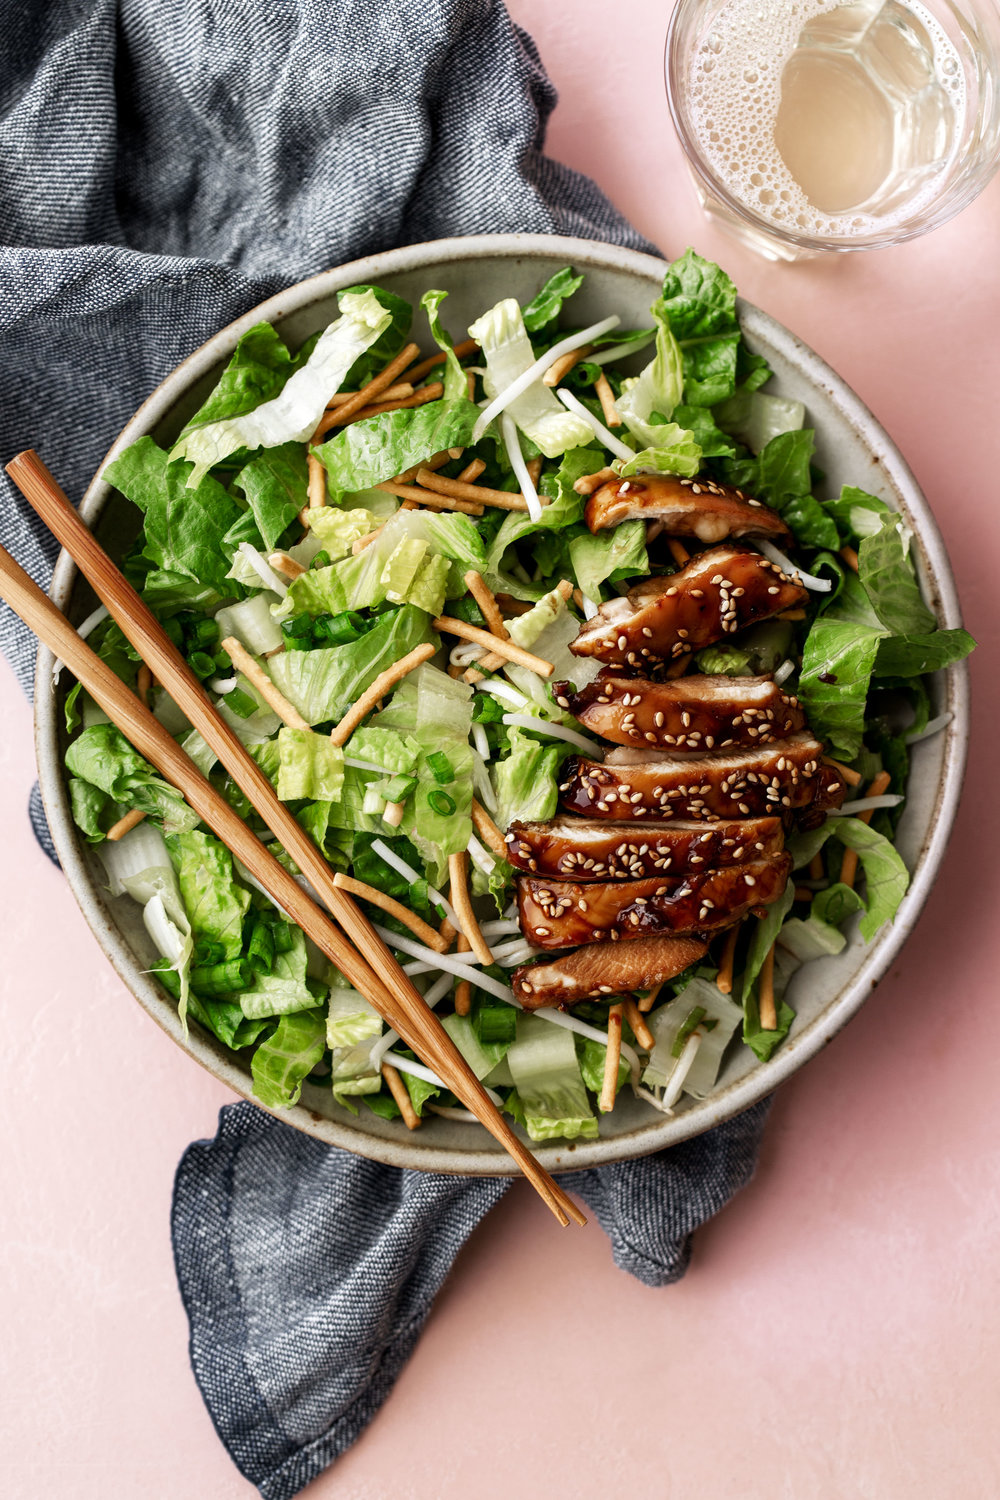 Crispy Teriyaki Chicken Salad recipe from Cooking with Cocktail rings